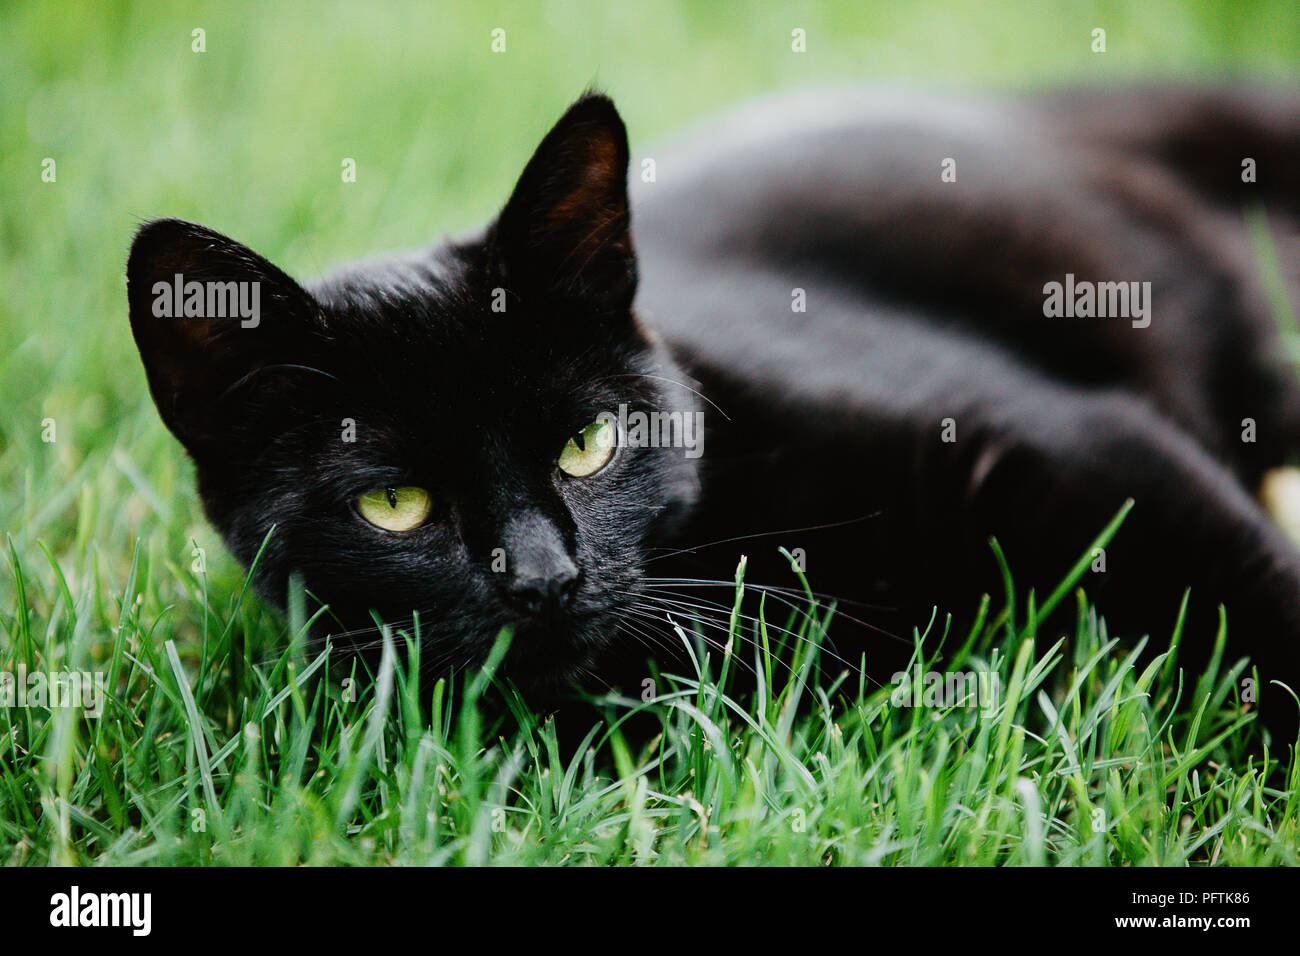 Close-up of black cat lying on green grass and looking into the camera. Black cat superstition as bringer of bad luck or good luck. Black cat apprecia - Stock Image